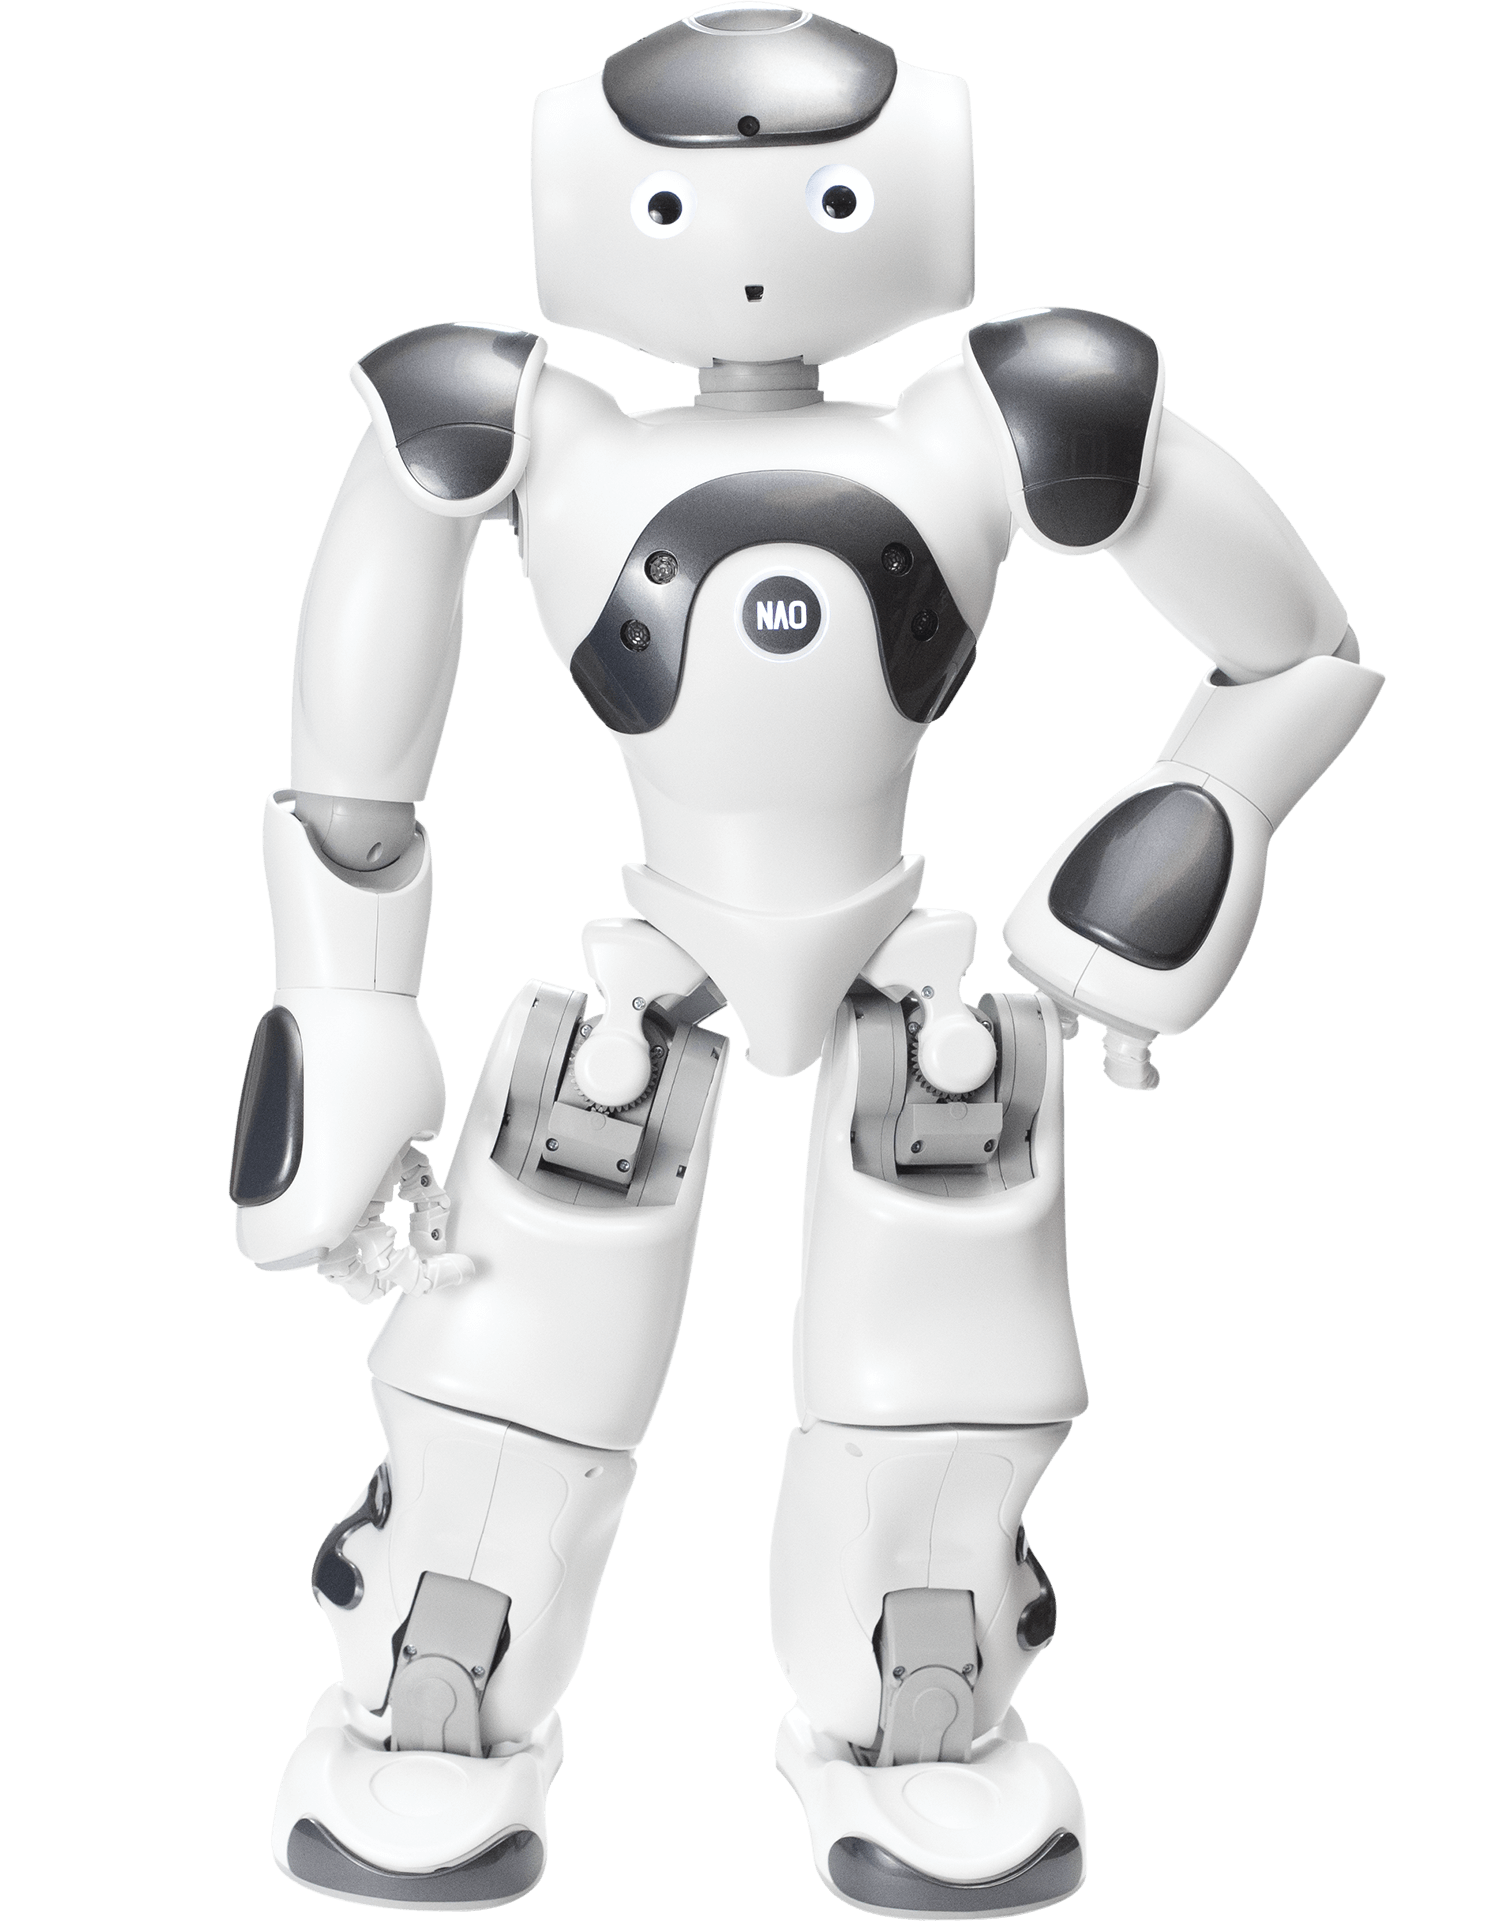 NAO the humanoid and programmable robot | SoftBank Robotics